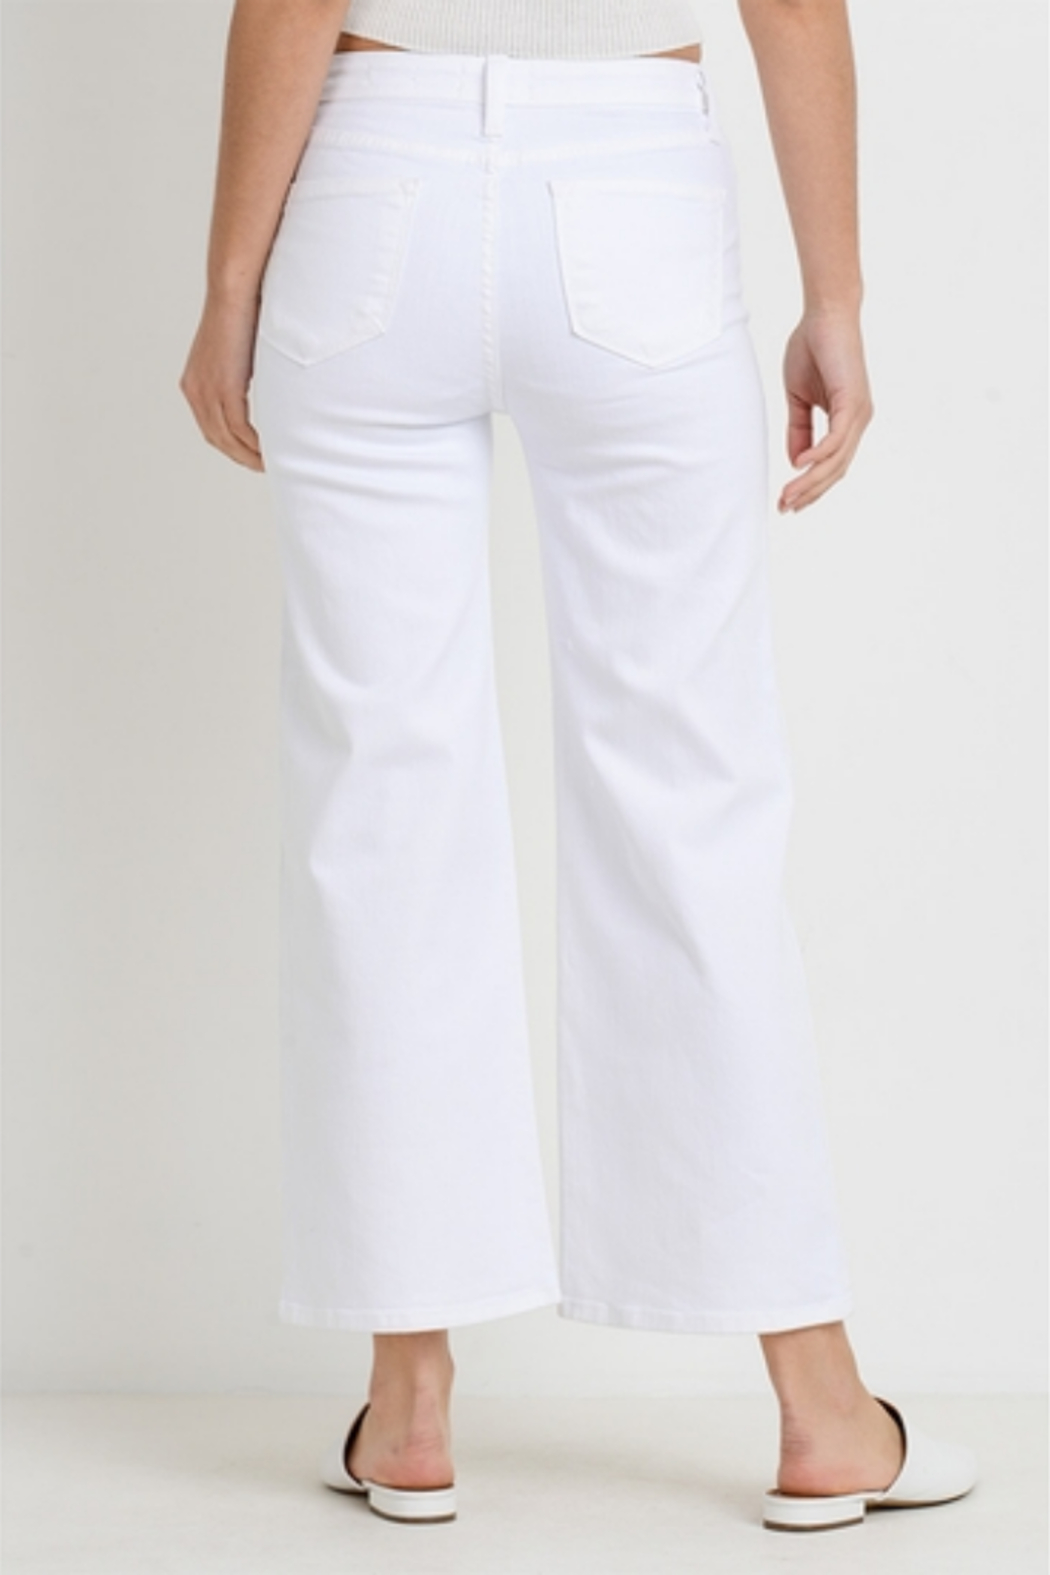 Letters to Juliet Genoa Button Wide Leg Jeans - Side Cropped Image